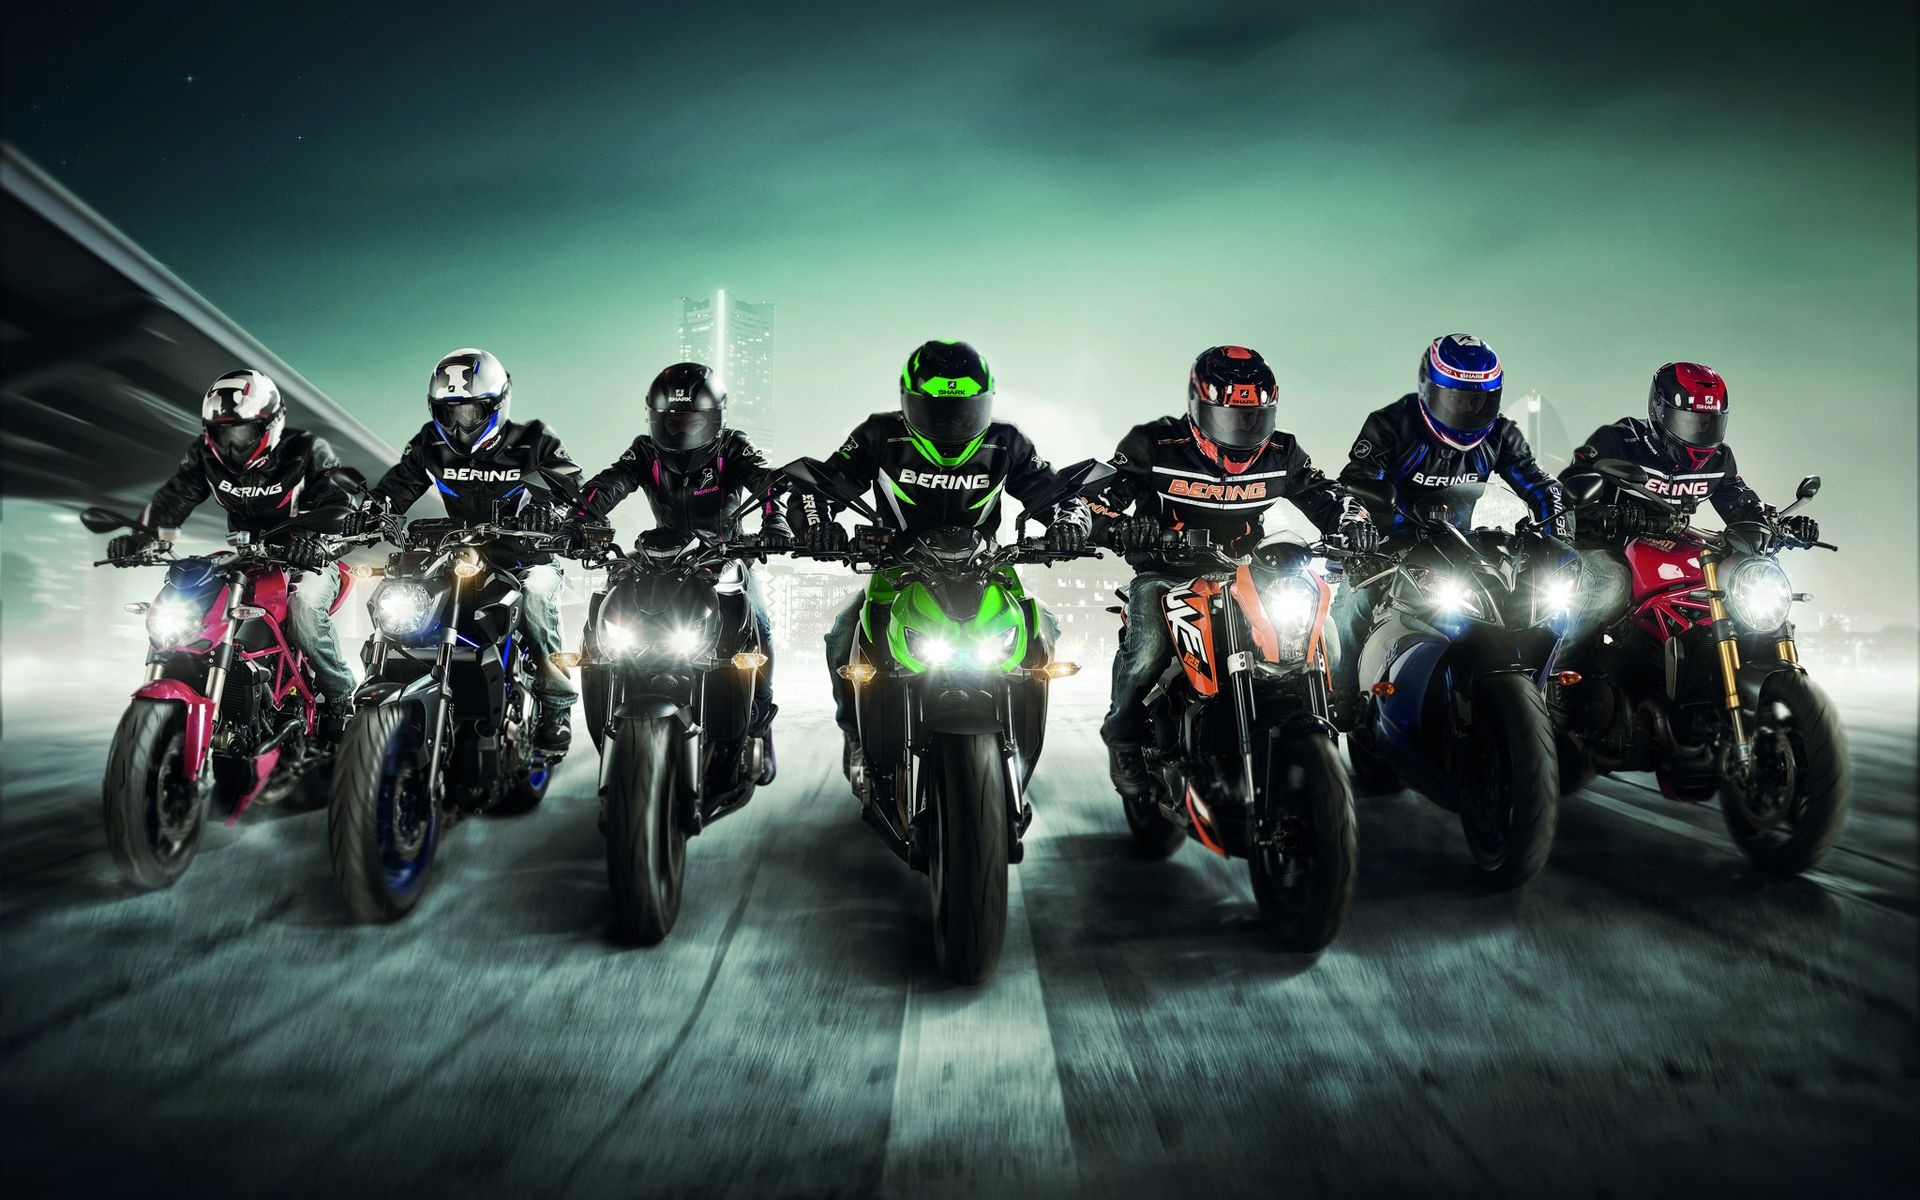 1920x1200 Motorcycle Hd Wallpapers 2 Data Id Data   Motorcycle 1920x1200